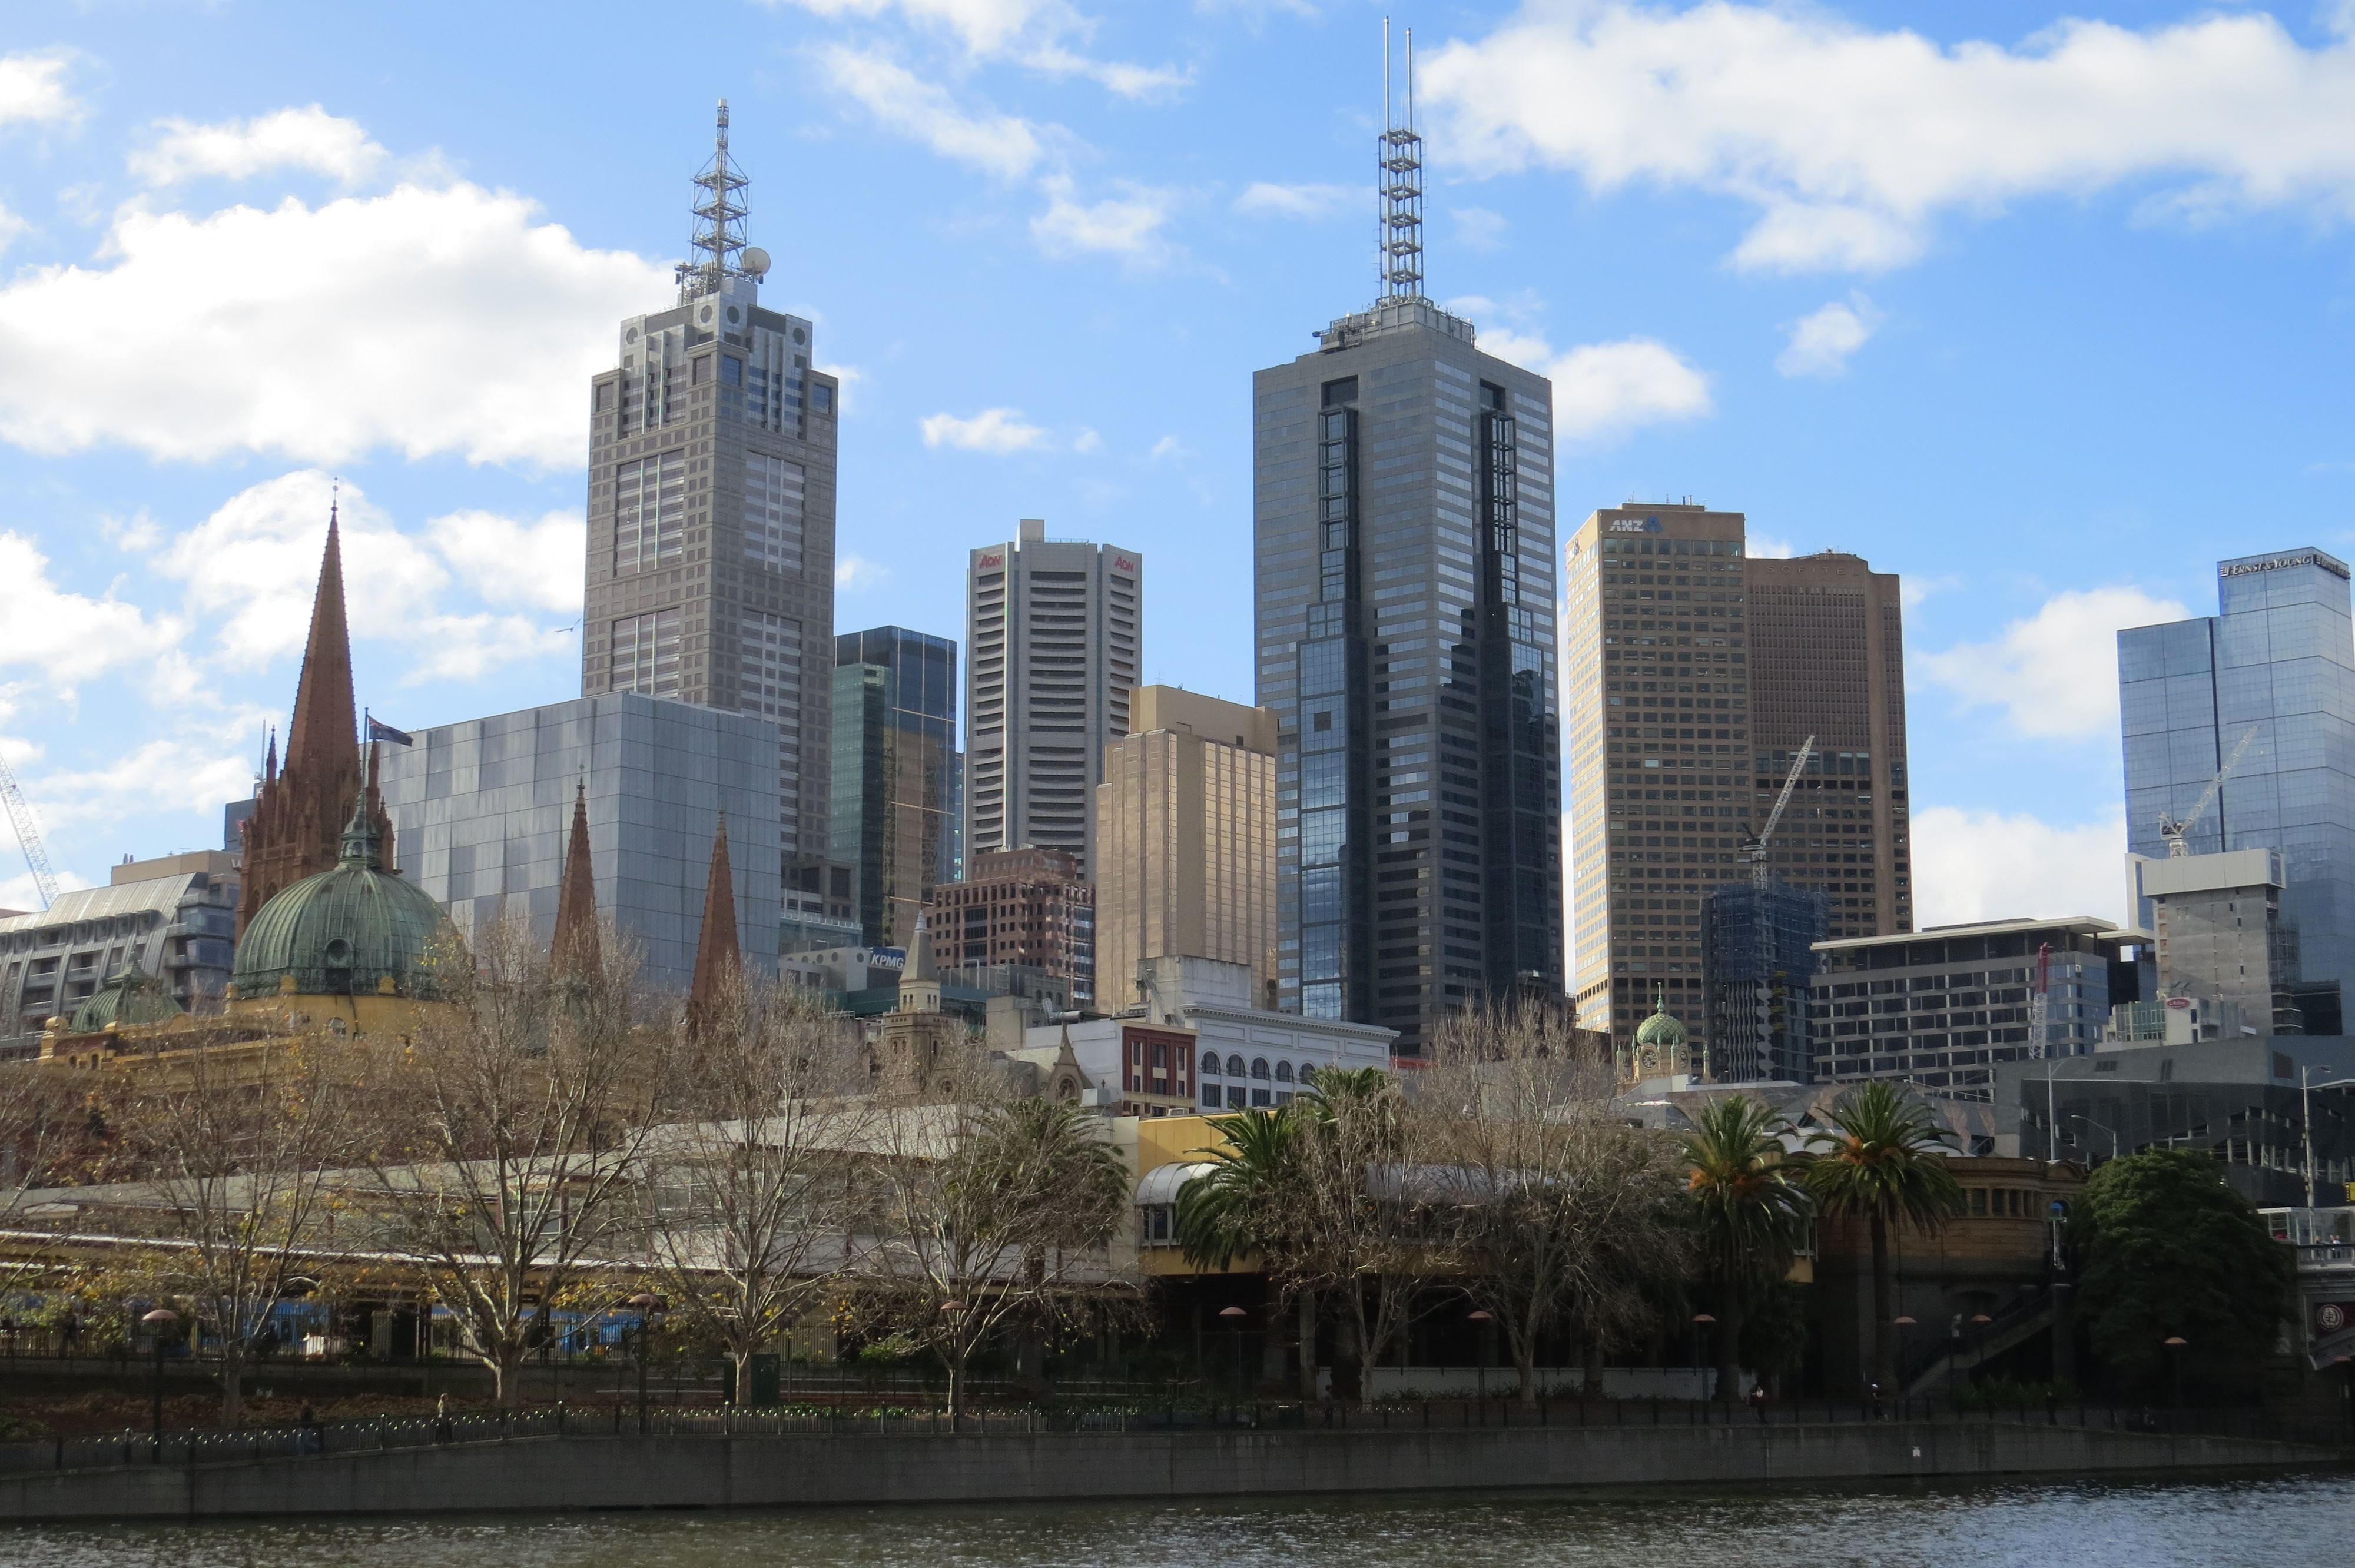 Stunning sunny Melbourne Day, spent admiring the city's